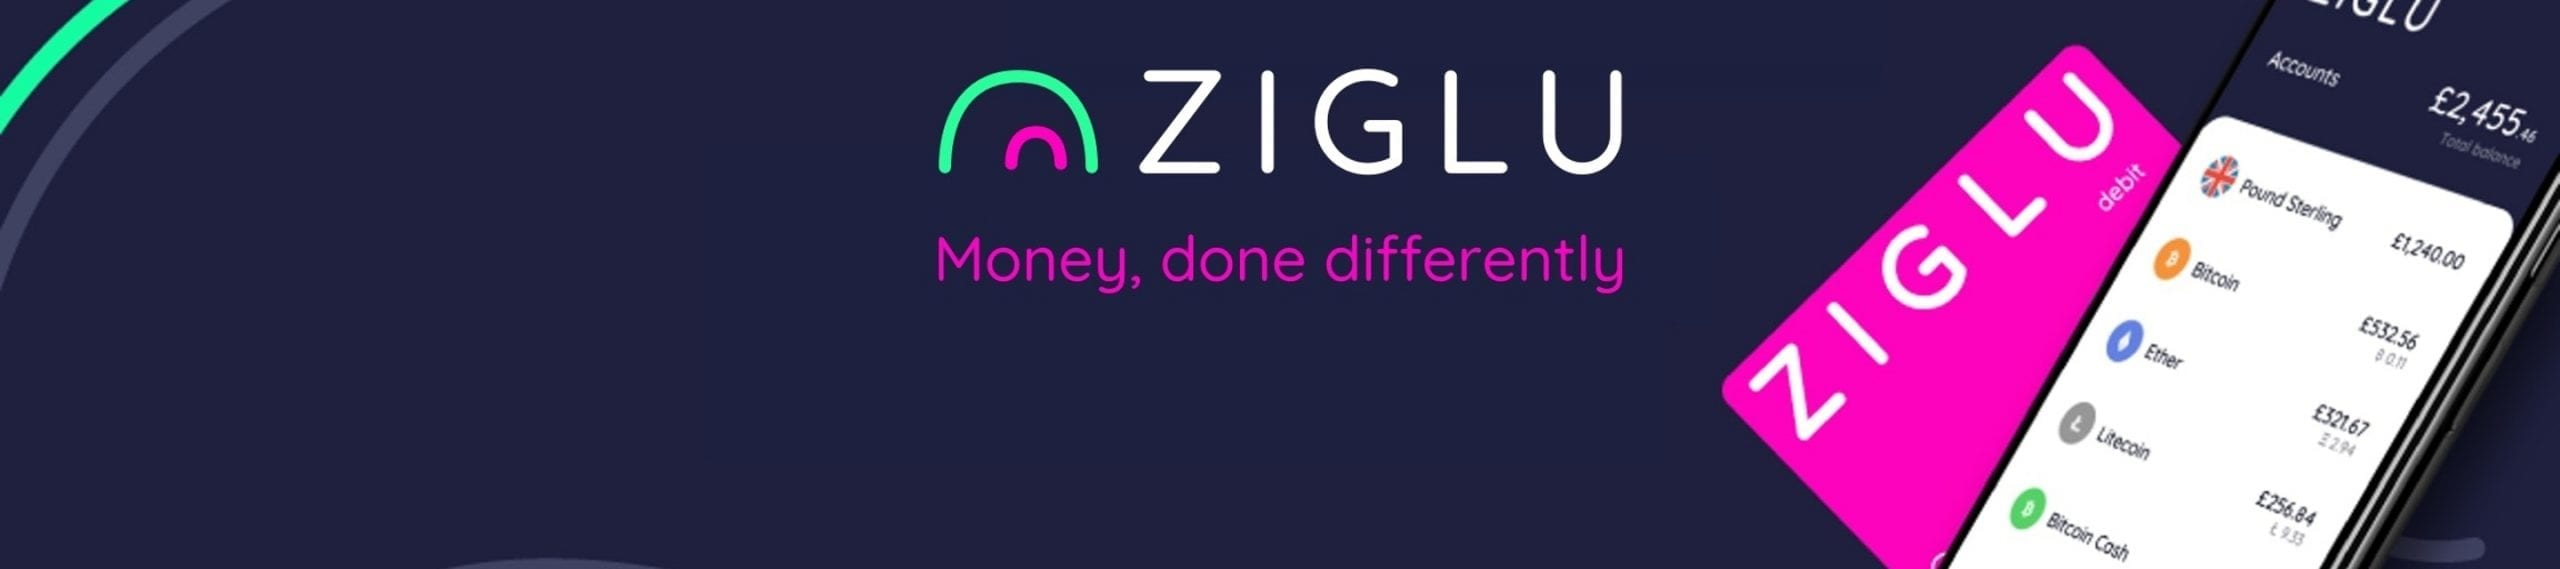 ZIGLU LIMITED | Equity | Seedrs | B2C | Crowdfund | Crowdfundingtracker | London